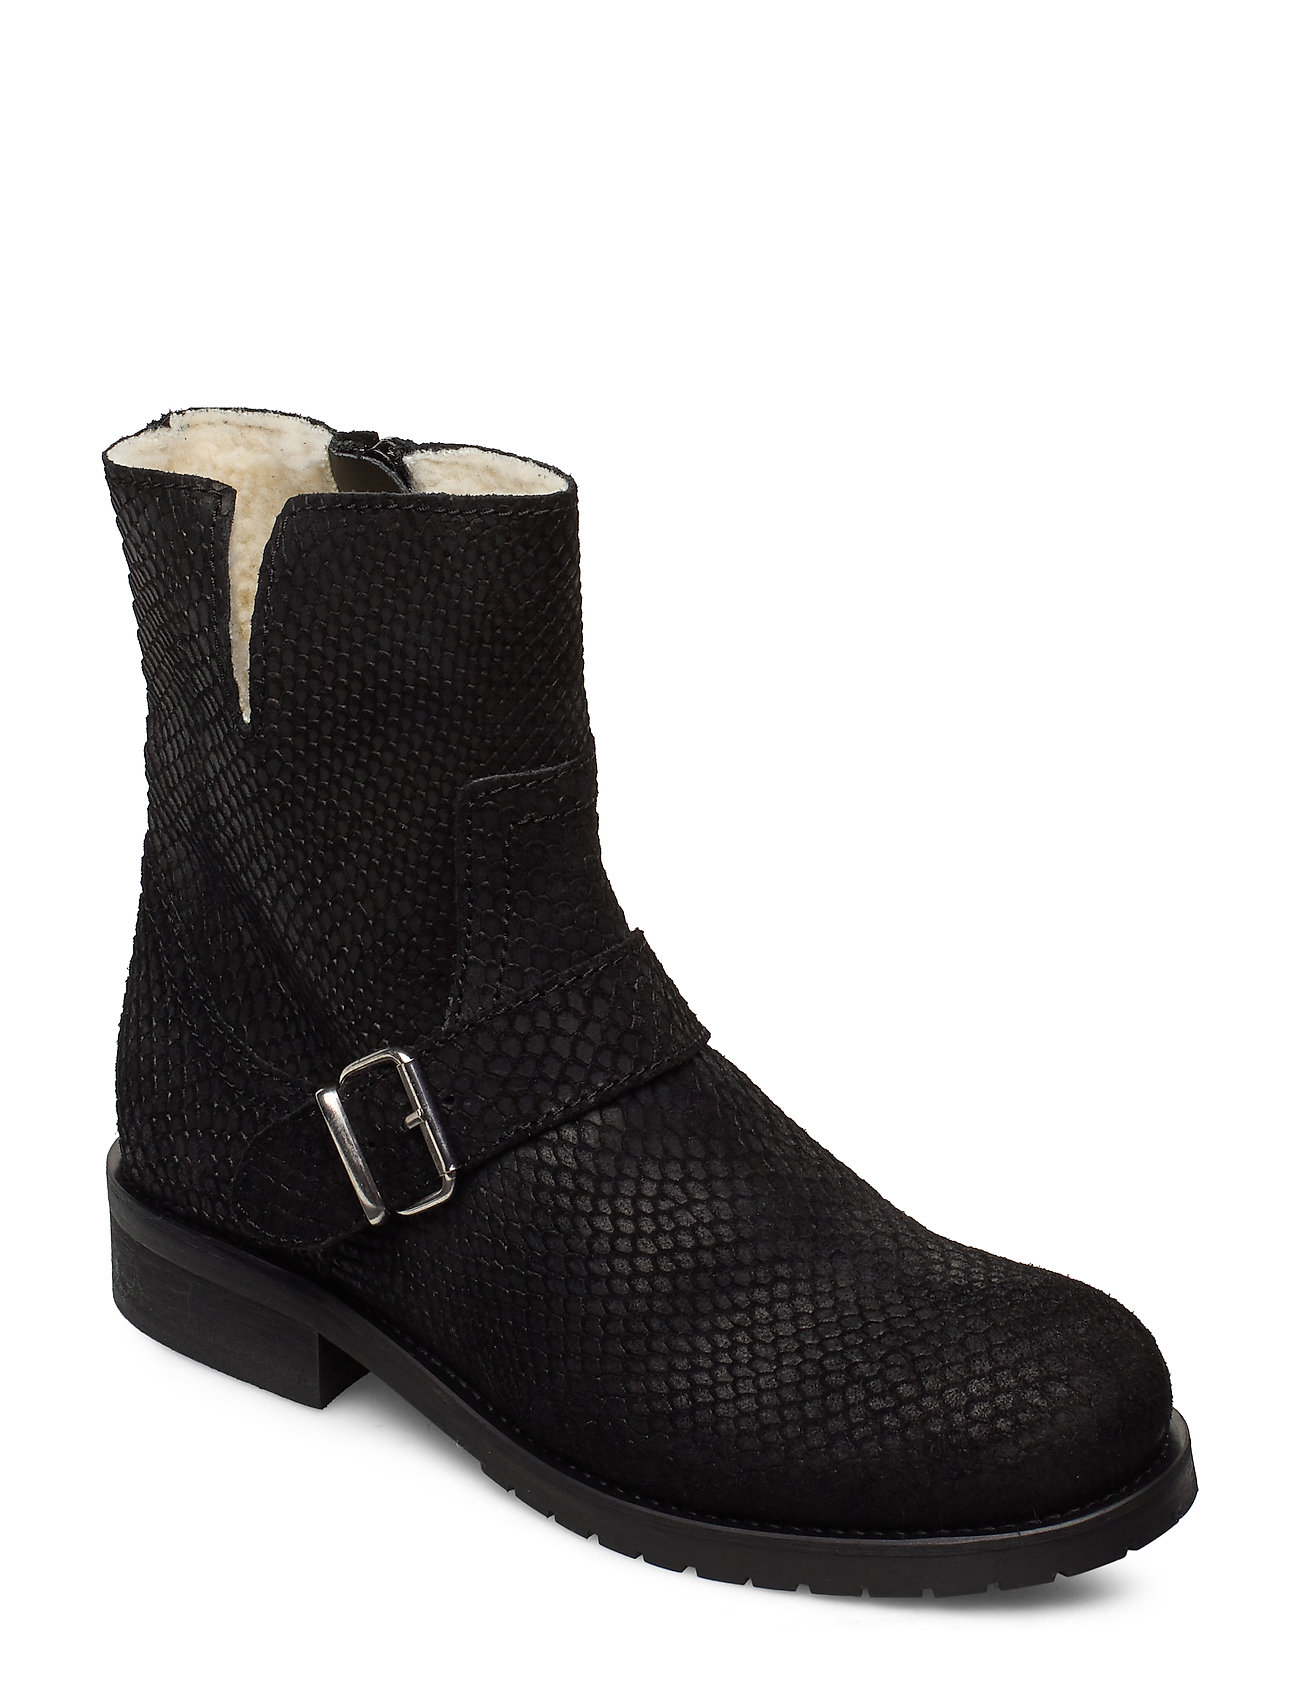 Image of Warm Lining 81923 Shoes Boots Ankle Boots Ankle Boot - Flat Sort Carla F (3406242203)